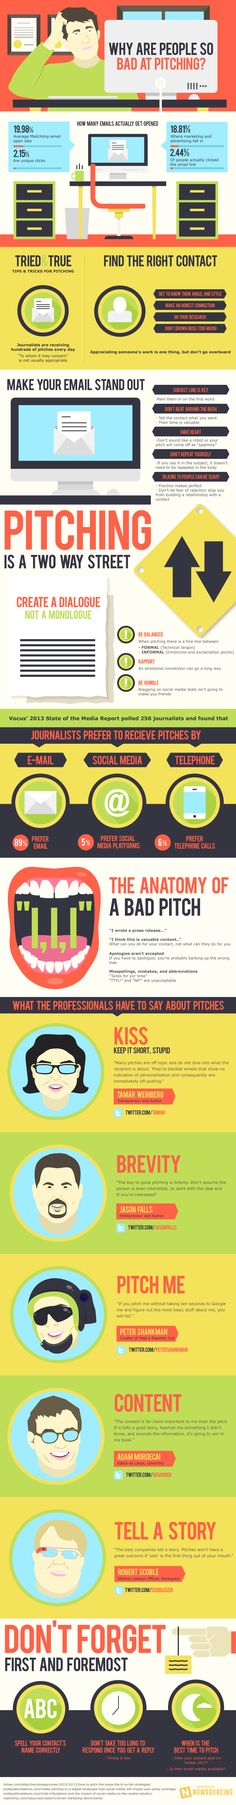 Get More Freelance Work: Make A Quality Pitch   image